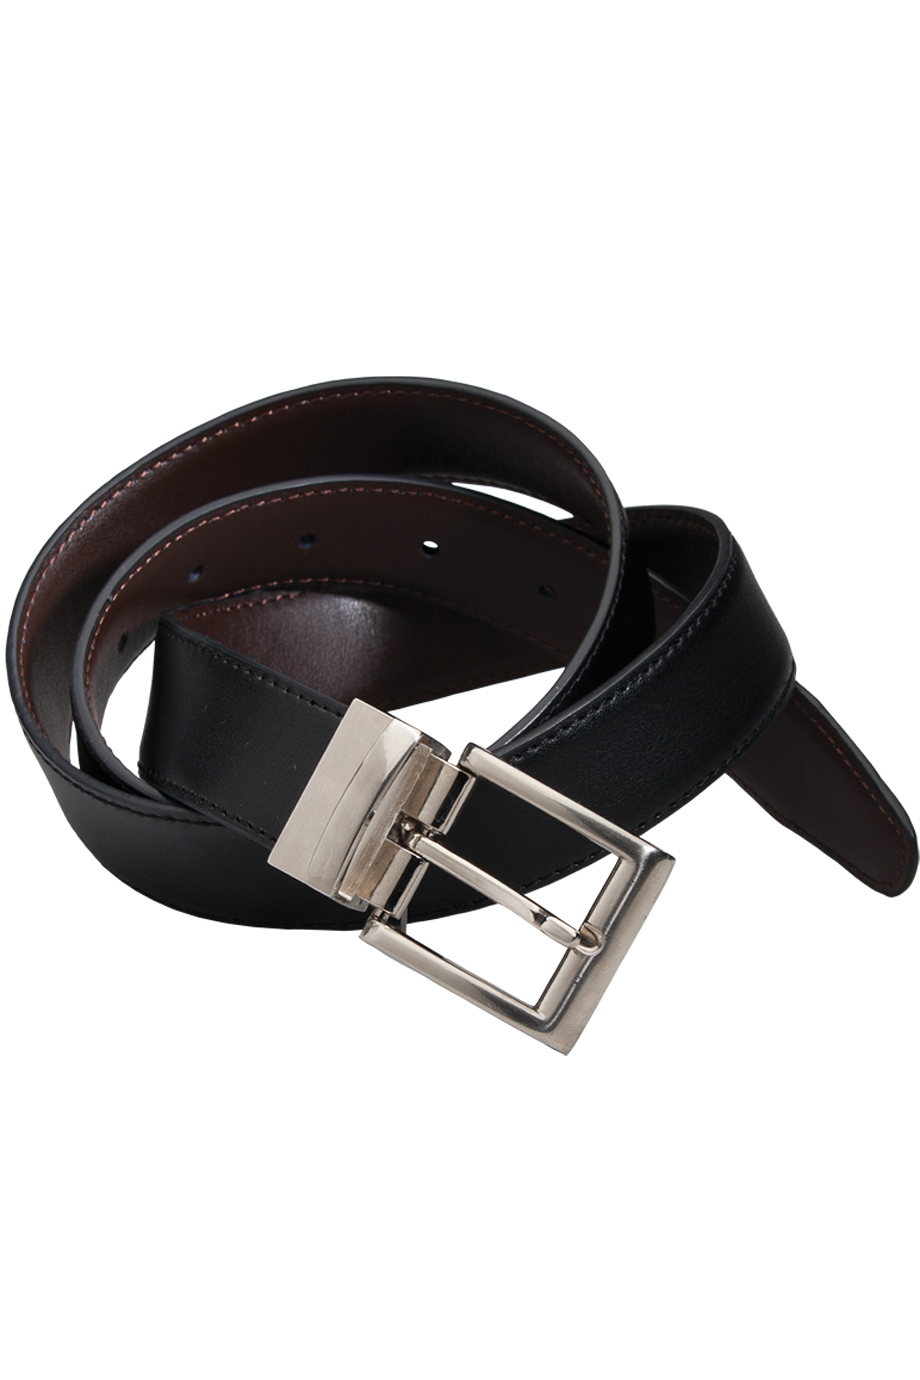 Men's Reversible Plain Belt